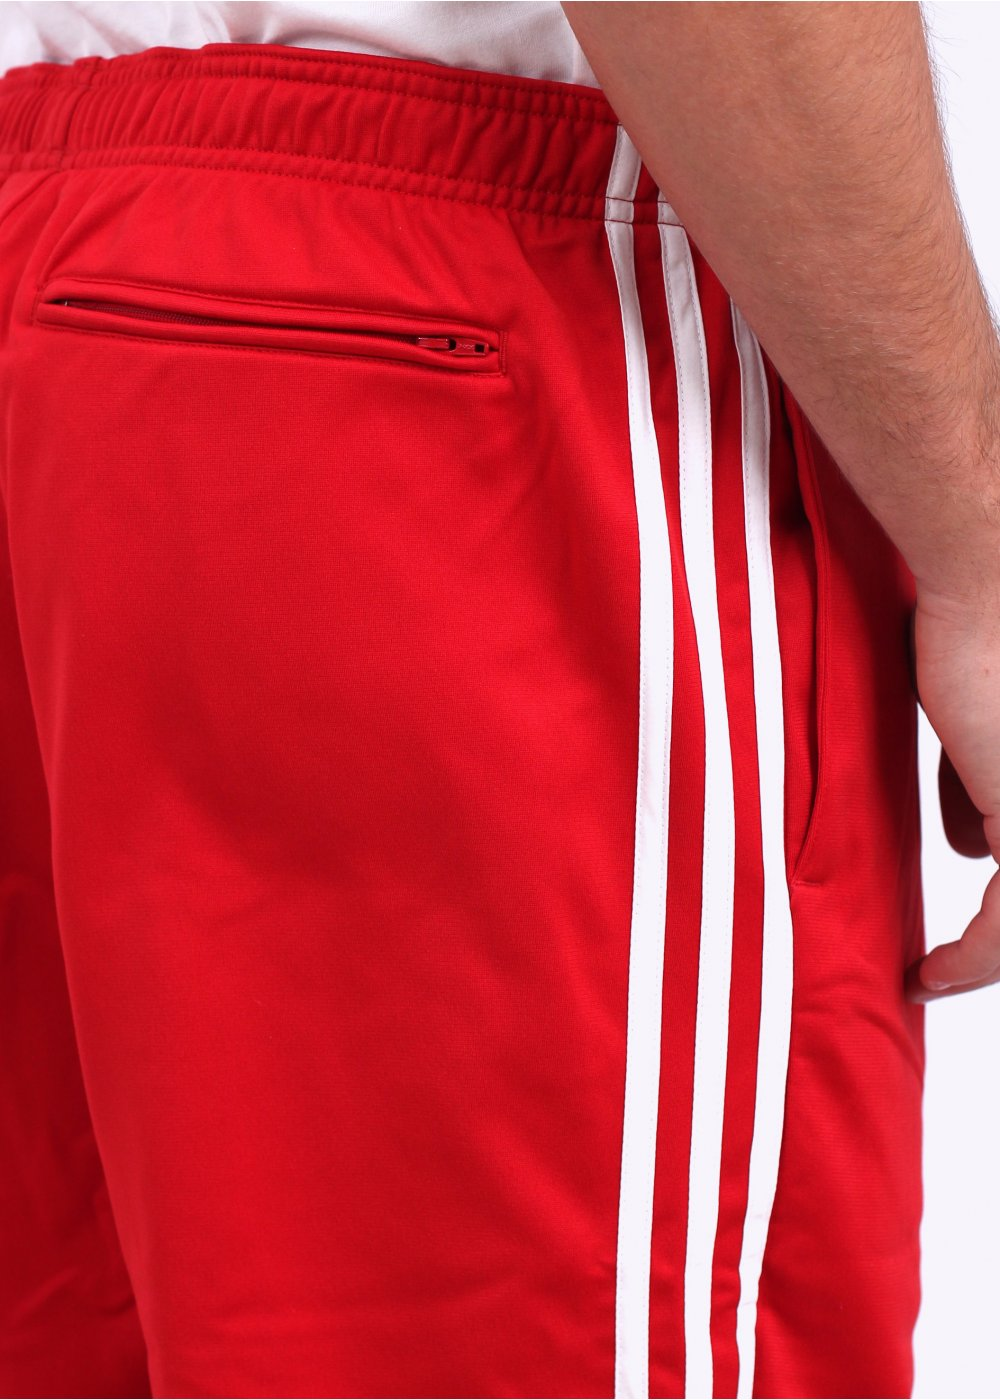 Adidas Originals Superstar Track Pant Collegiate Red